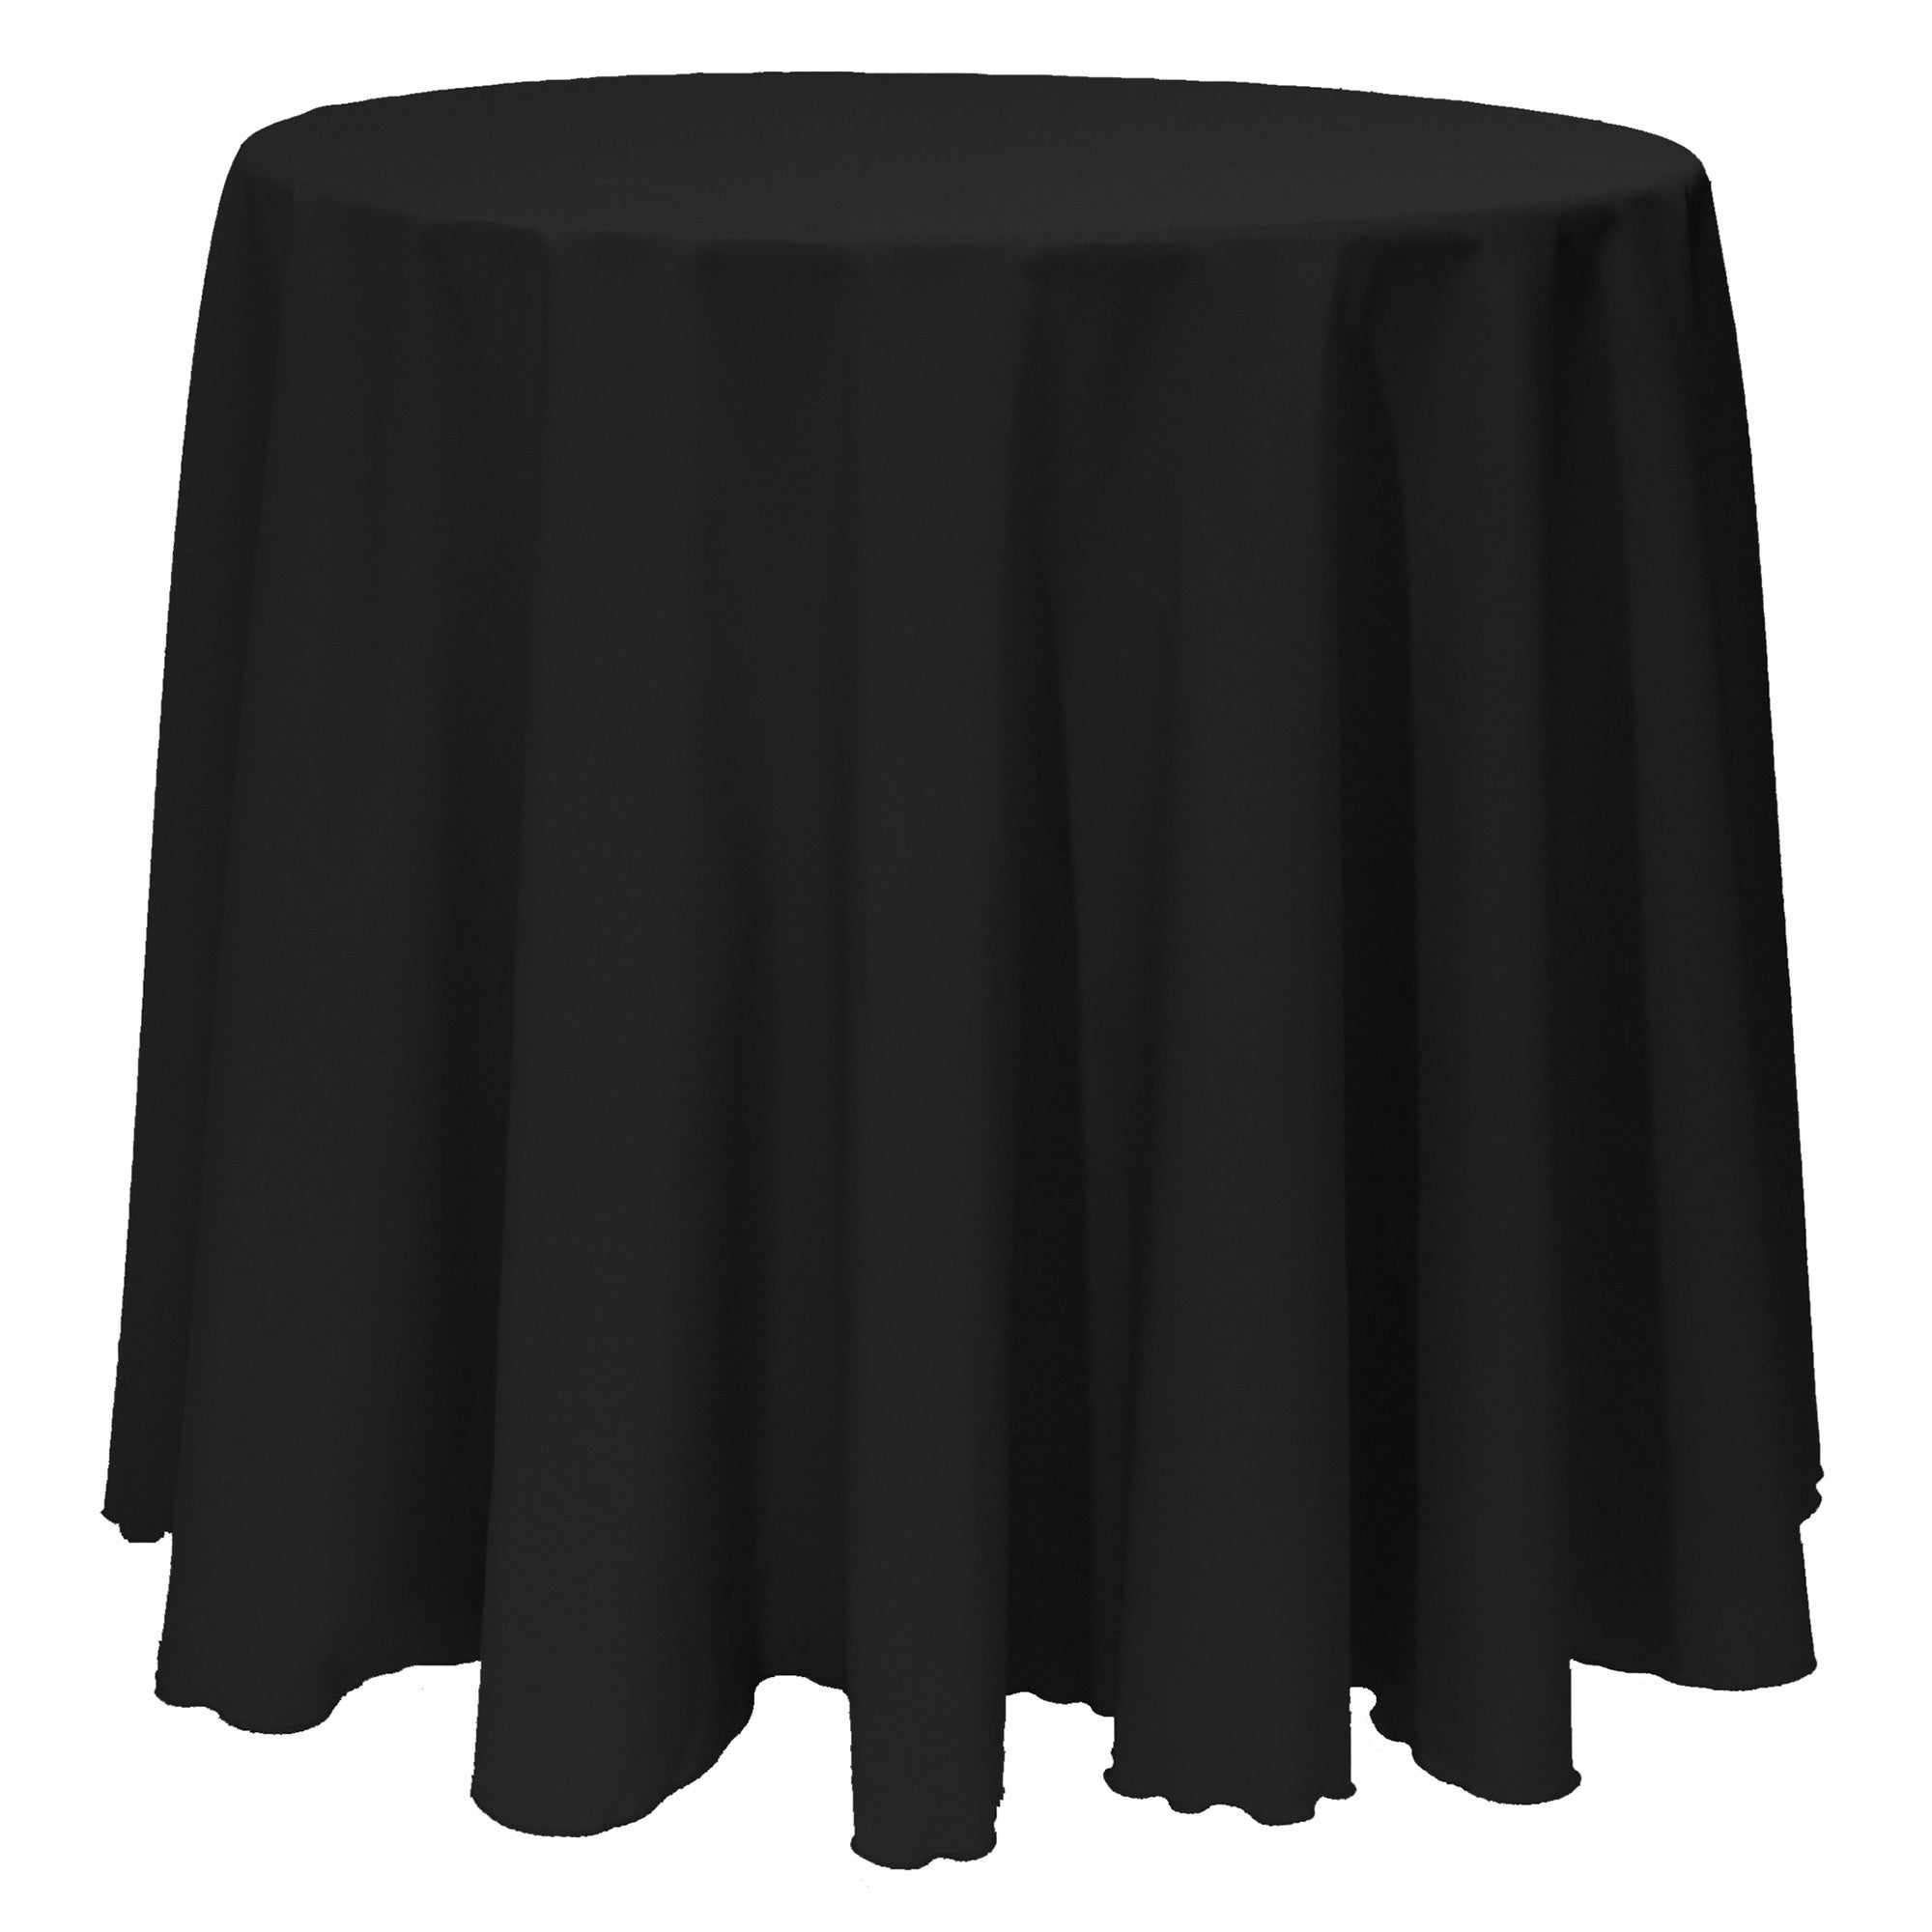 Solid Color 132-inches Round Vibrant Tablecloth (Black)